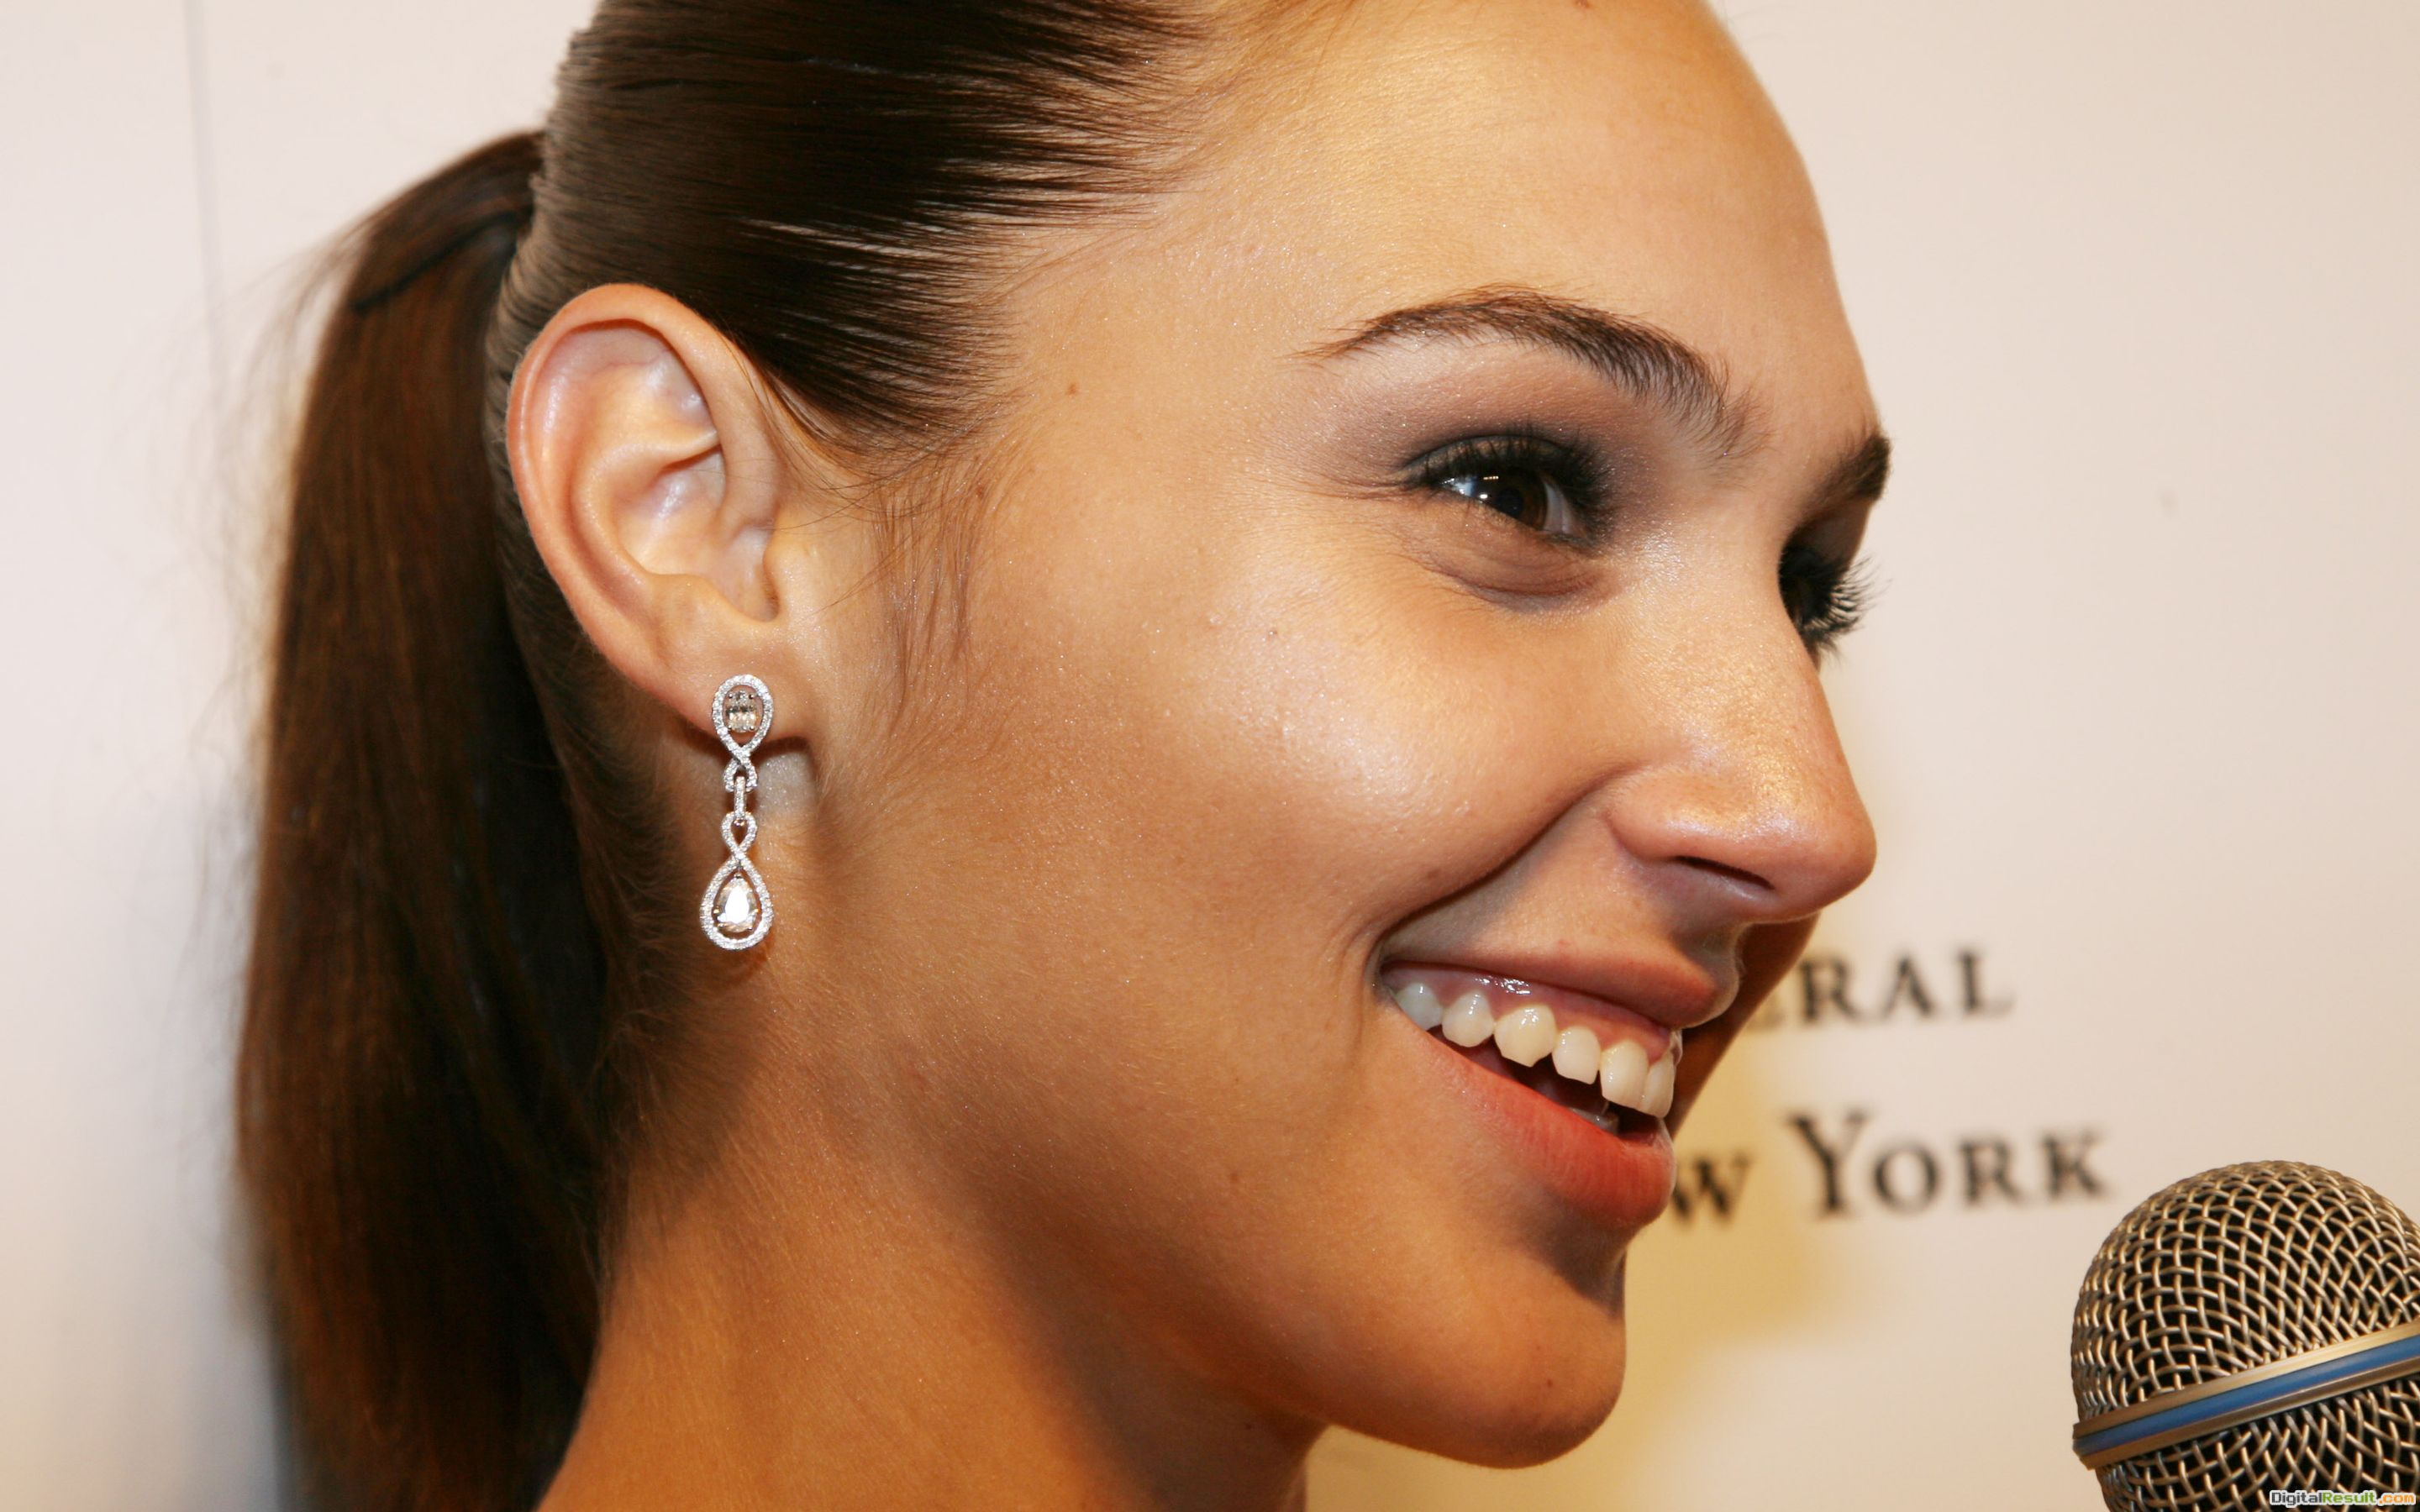 Gal Gadot Beautiful Wallpaper Hd Widescreen 1080p Background Pictures 1988